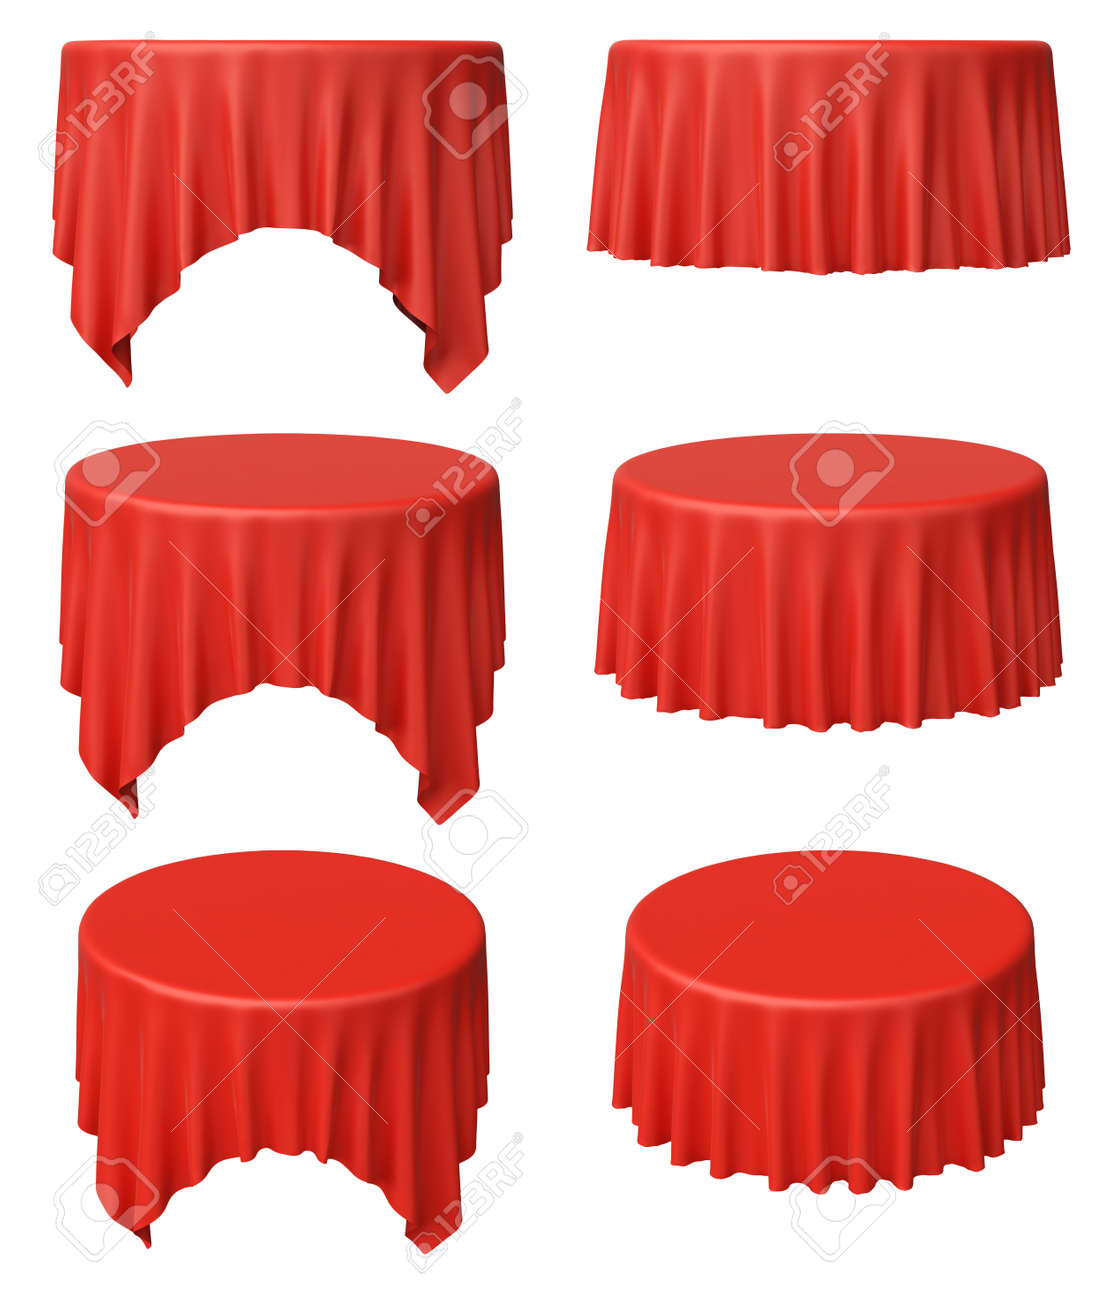 Illustration   Red Round Tablecloth Set Isolated On White, 3d Illustration  Collection